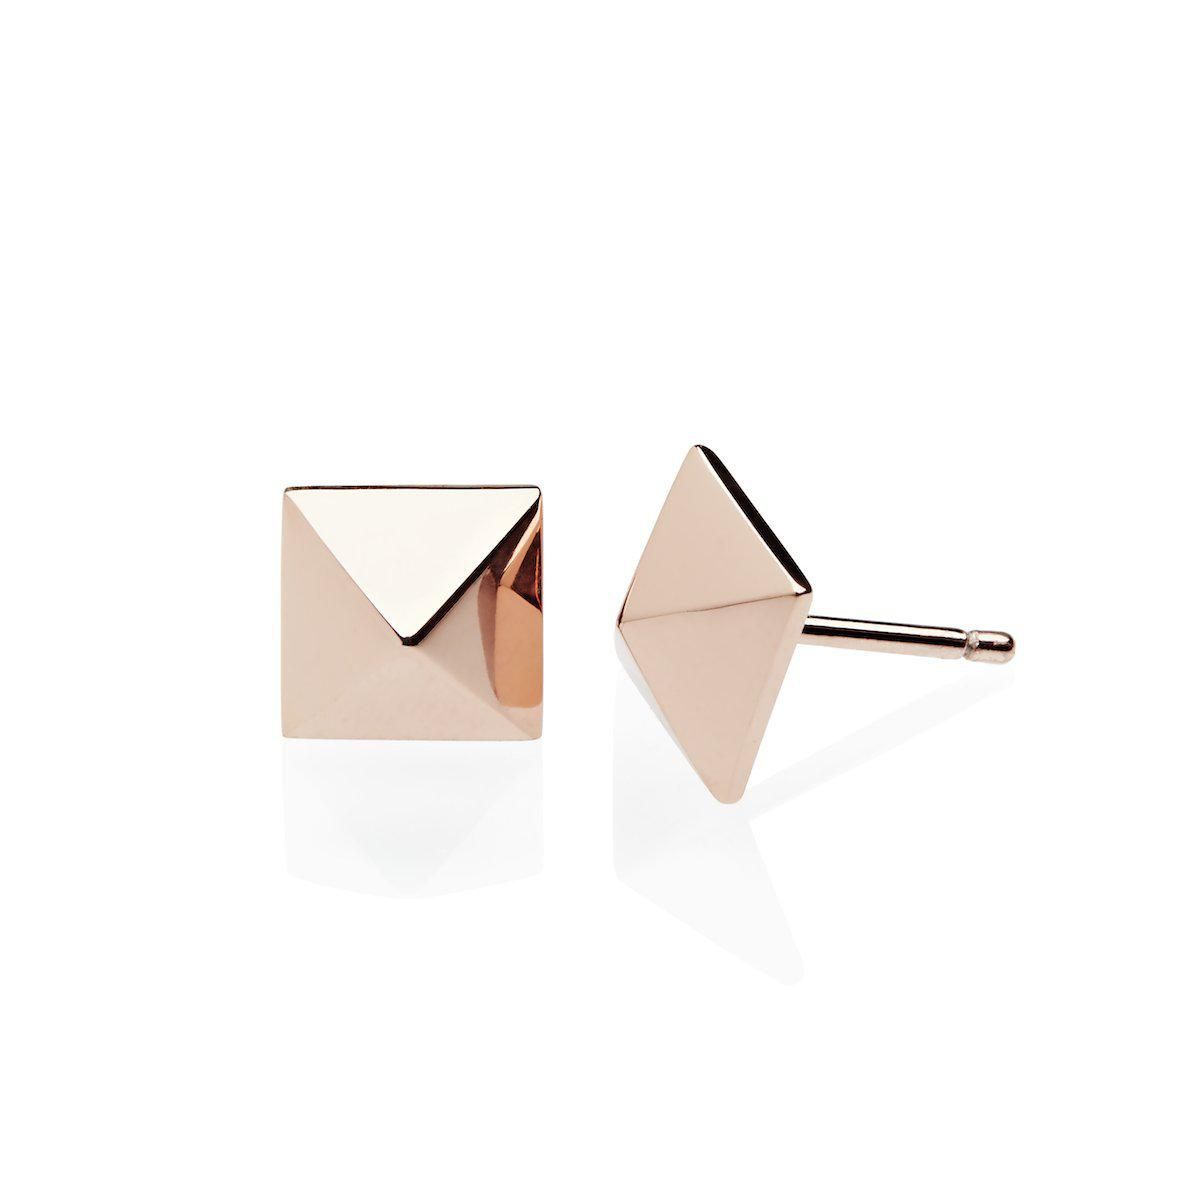 a08f4ab11 Zoe Pyramid Earring - Browse our Designer Accessories Today - The ...